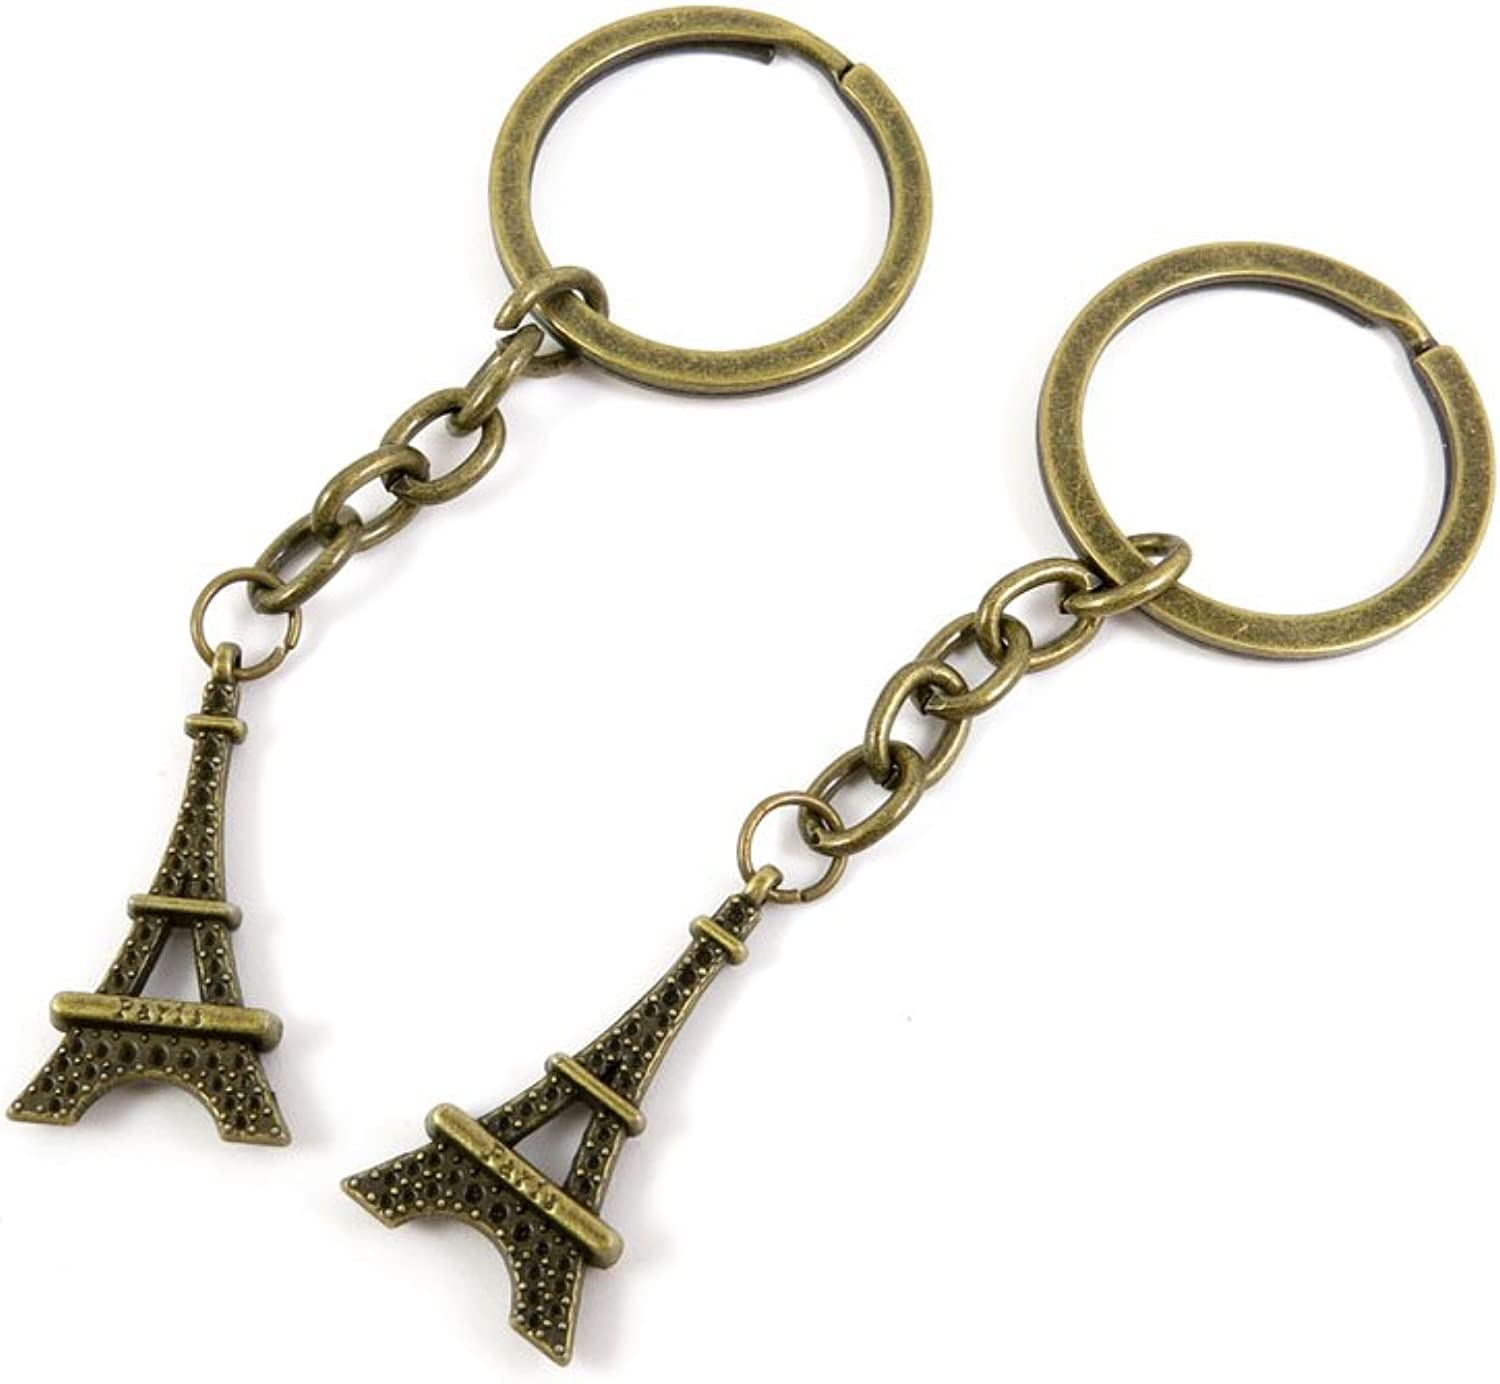 100 PCS Keyrings Keychains Key Ring Chains Tags Jewelry Findings Clasps Buckles Supplies X5OM6 Paris Eiffel Tower